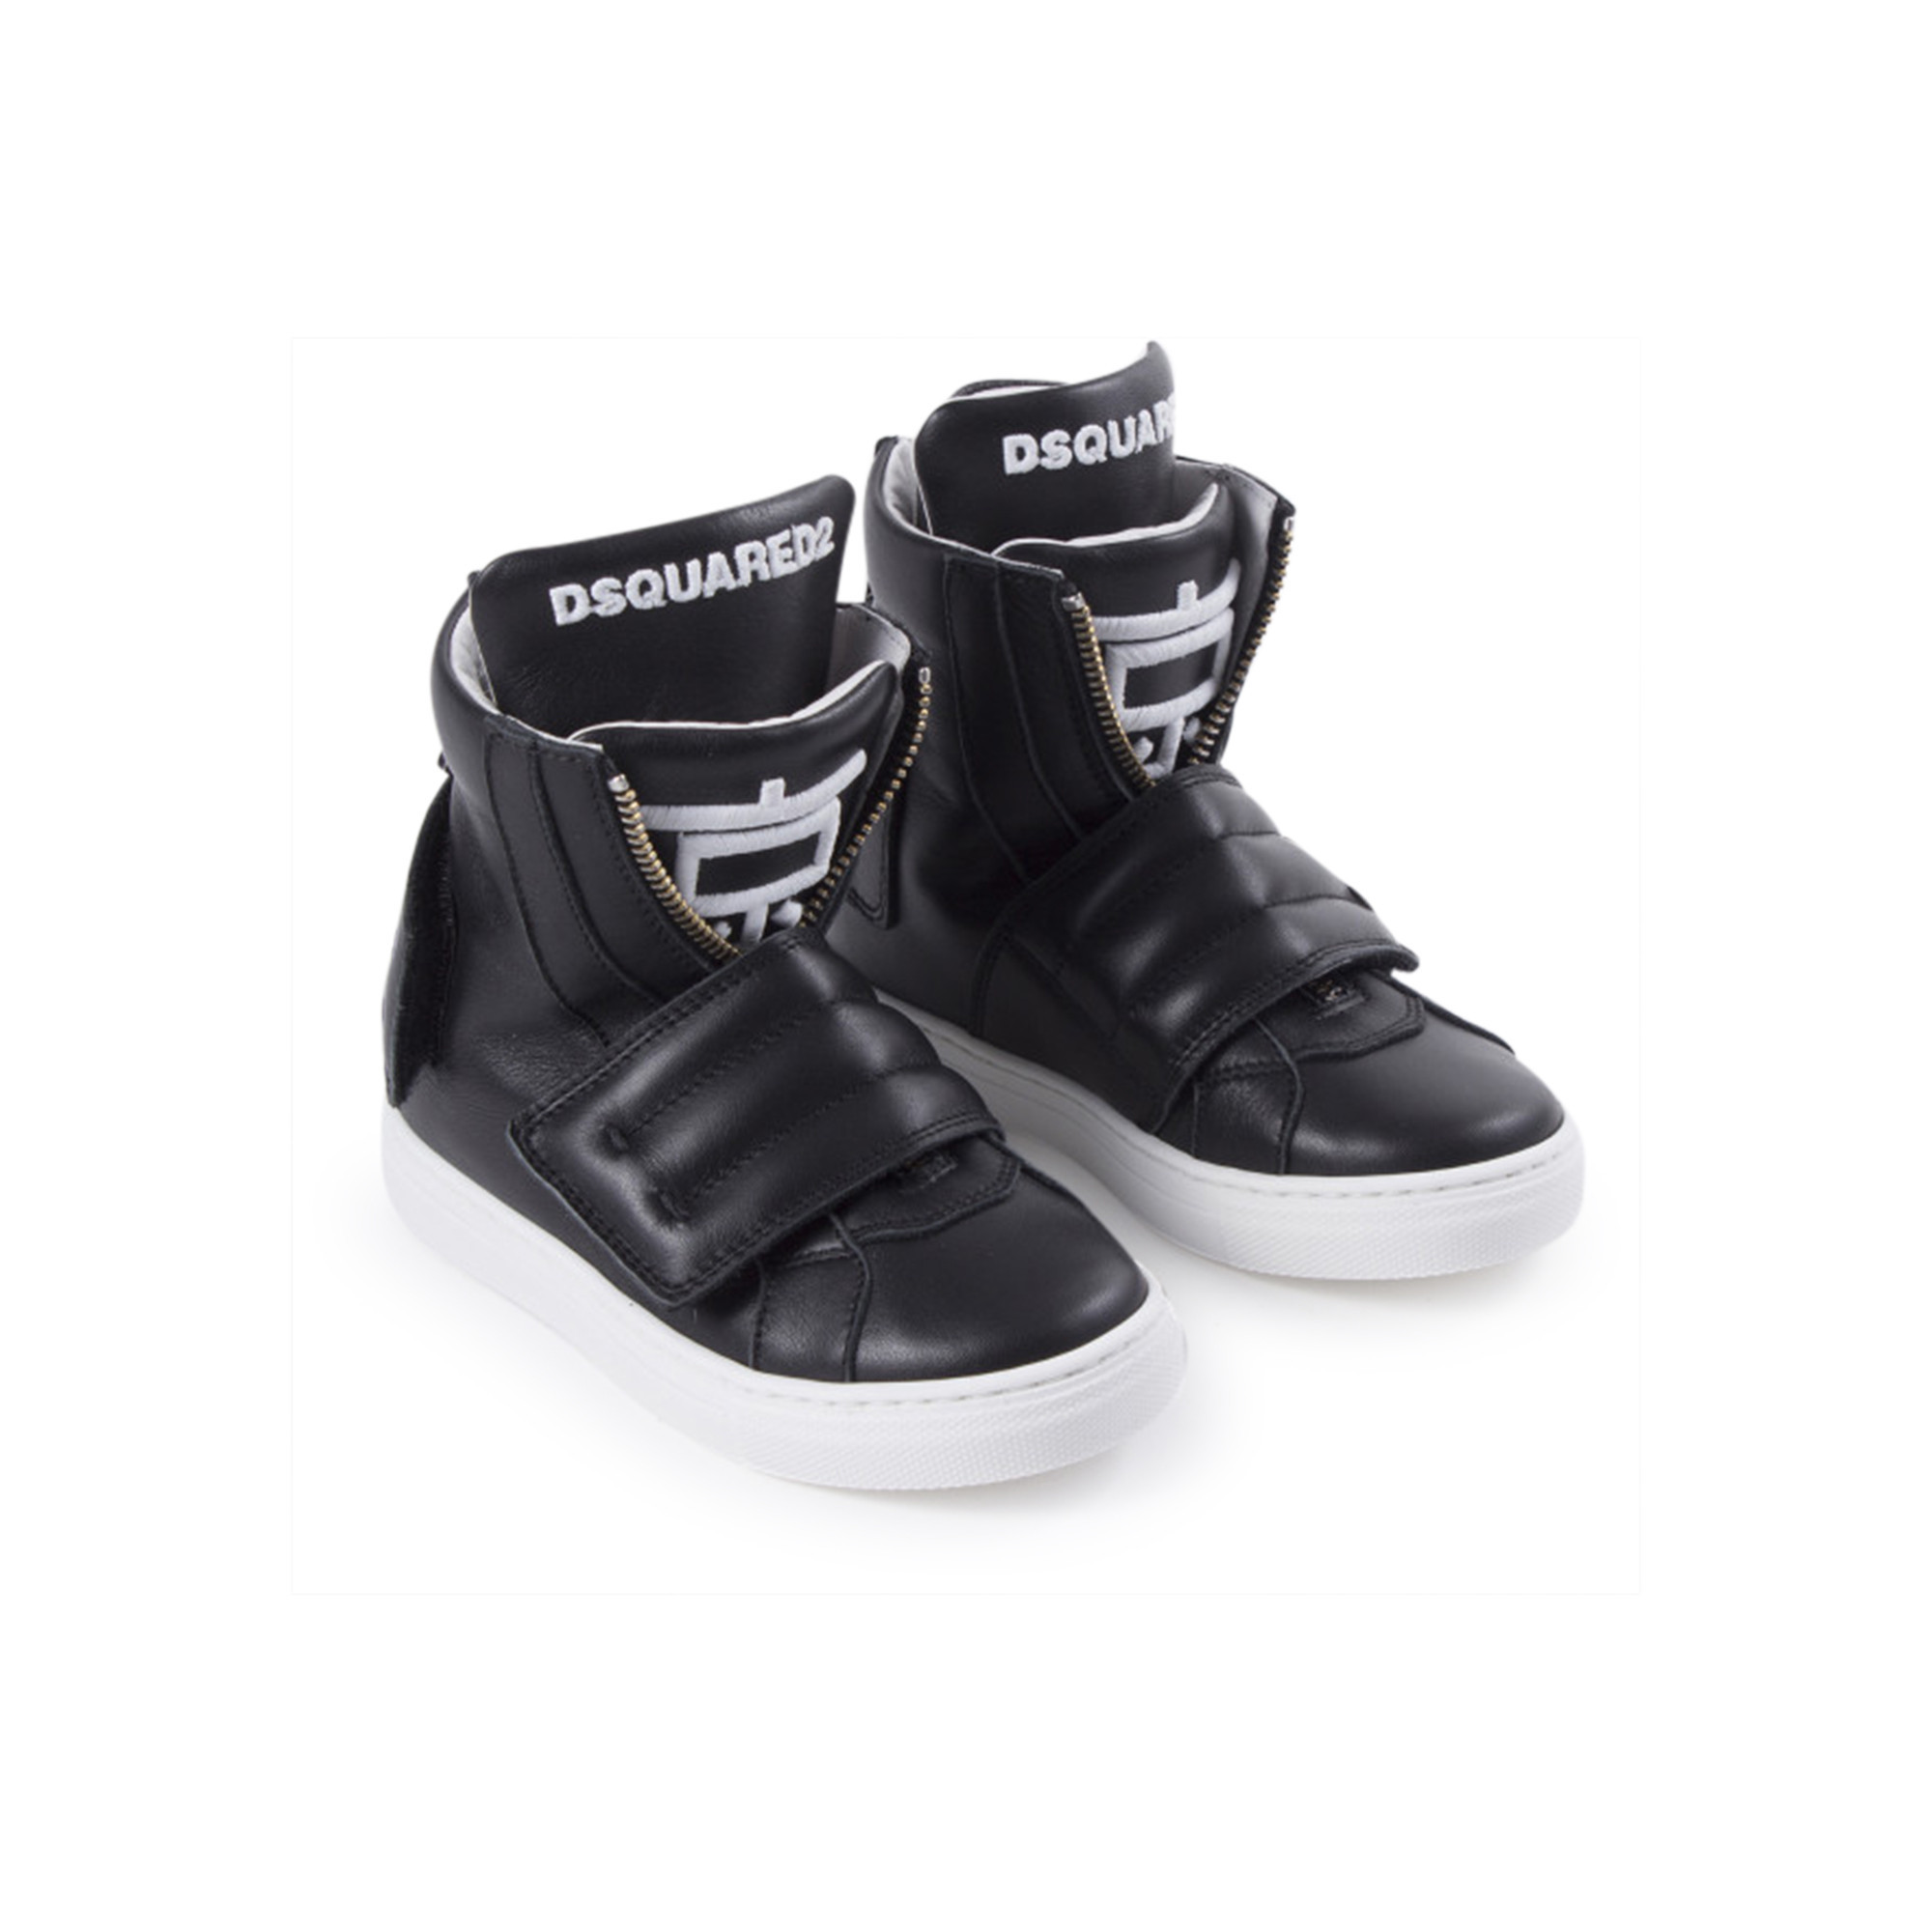 DSQUARED2 Boys Black Leather High-Top